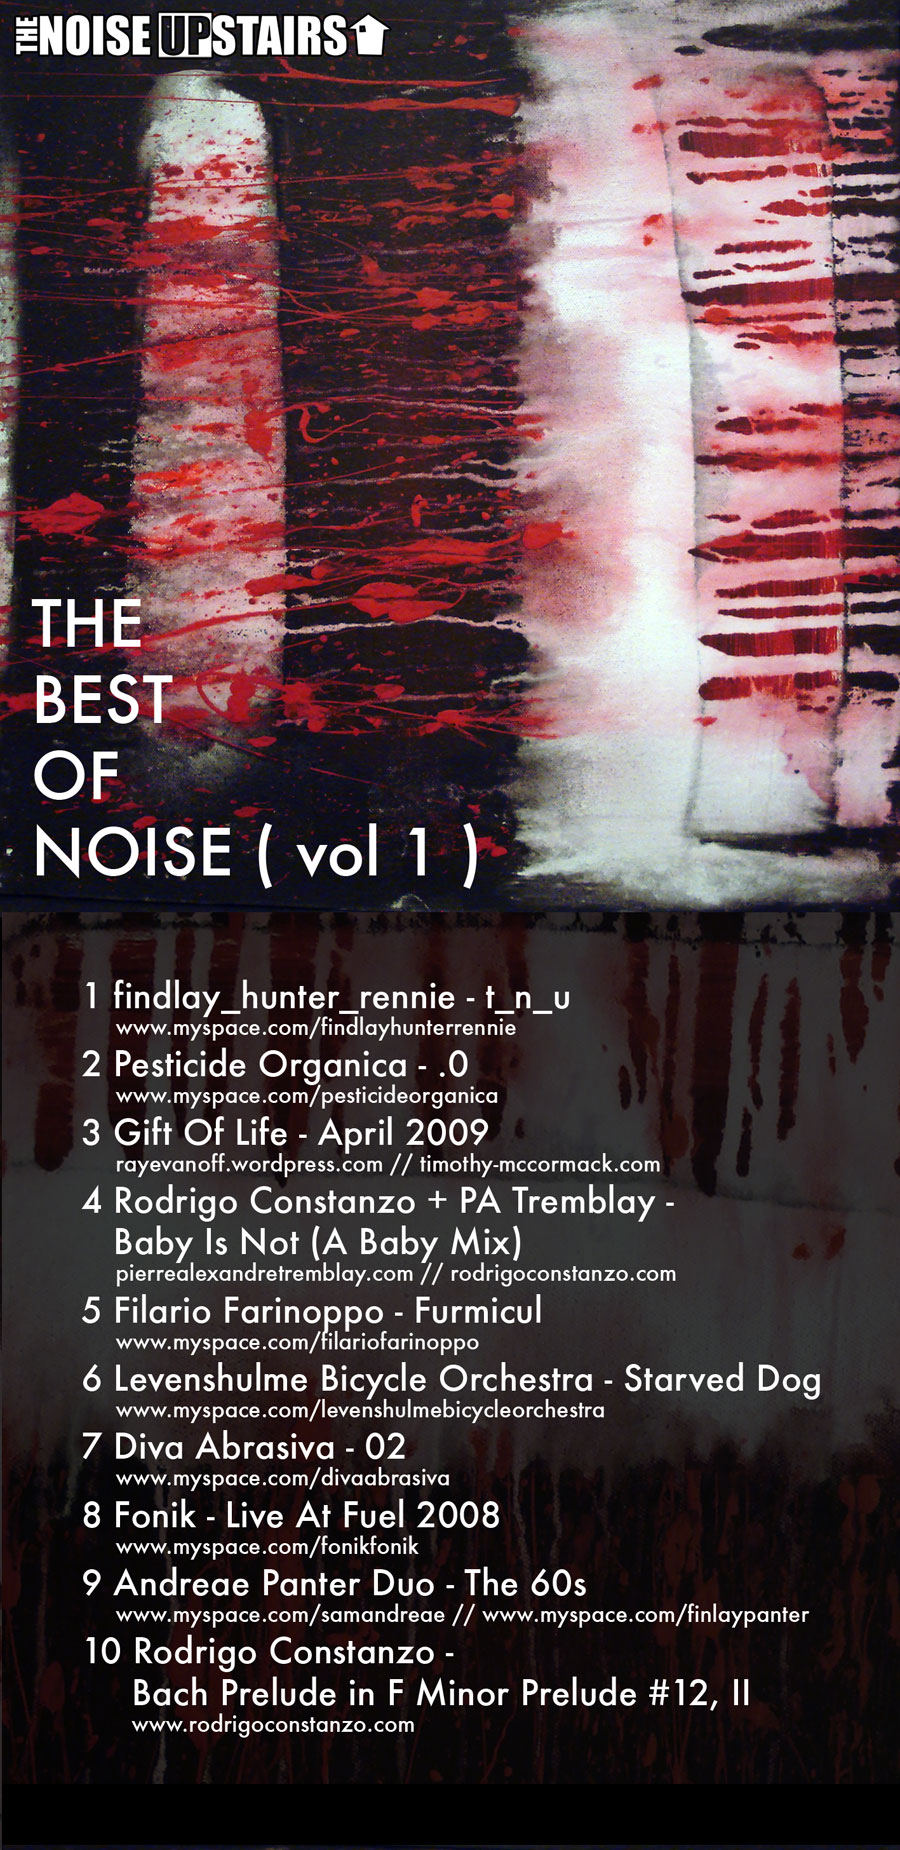 The Best of Noise (vol 1)